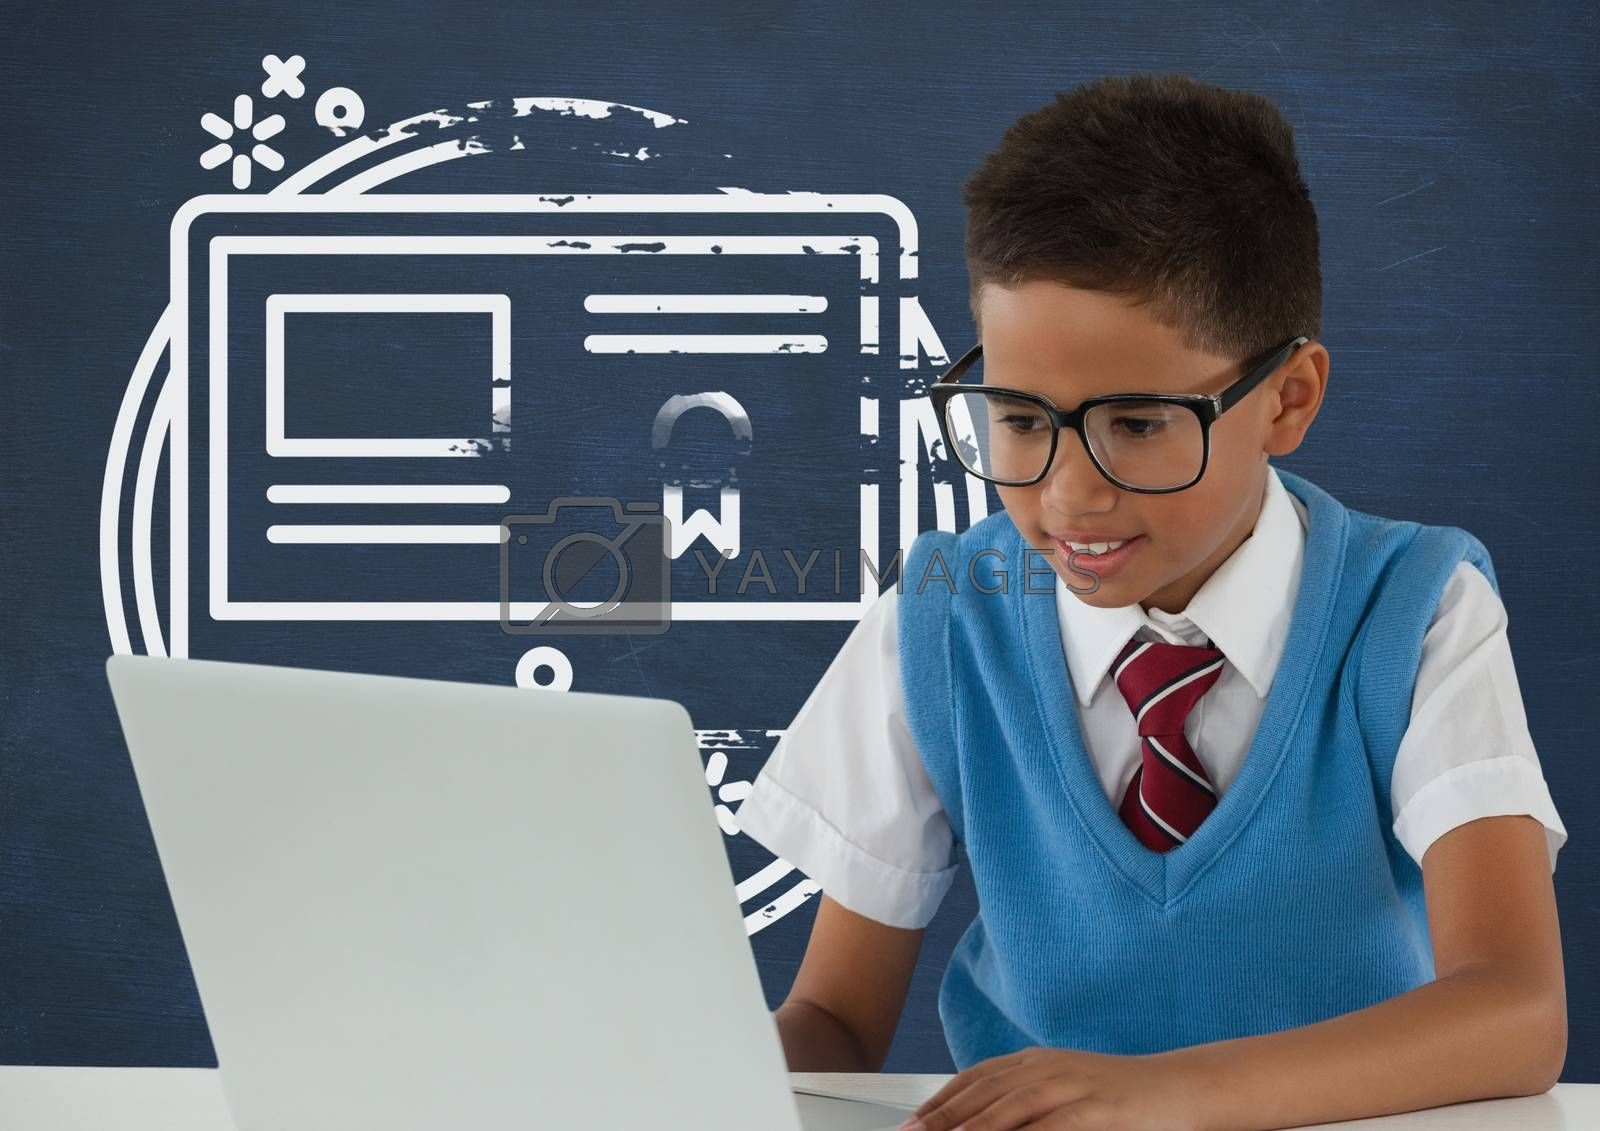 Student boy at table looking at a computer against blue blackboard with school and education graphic by Wavebreakmedia